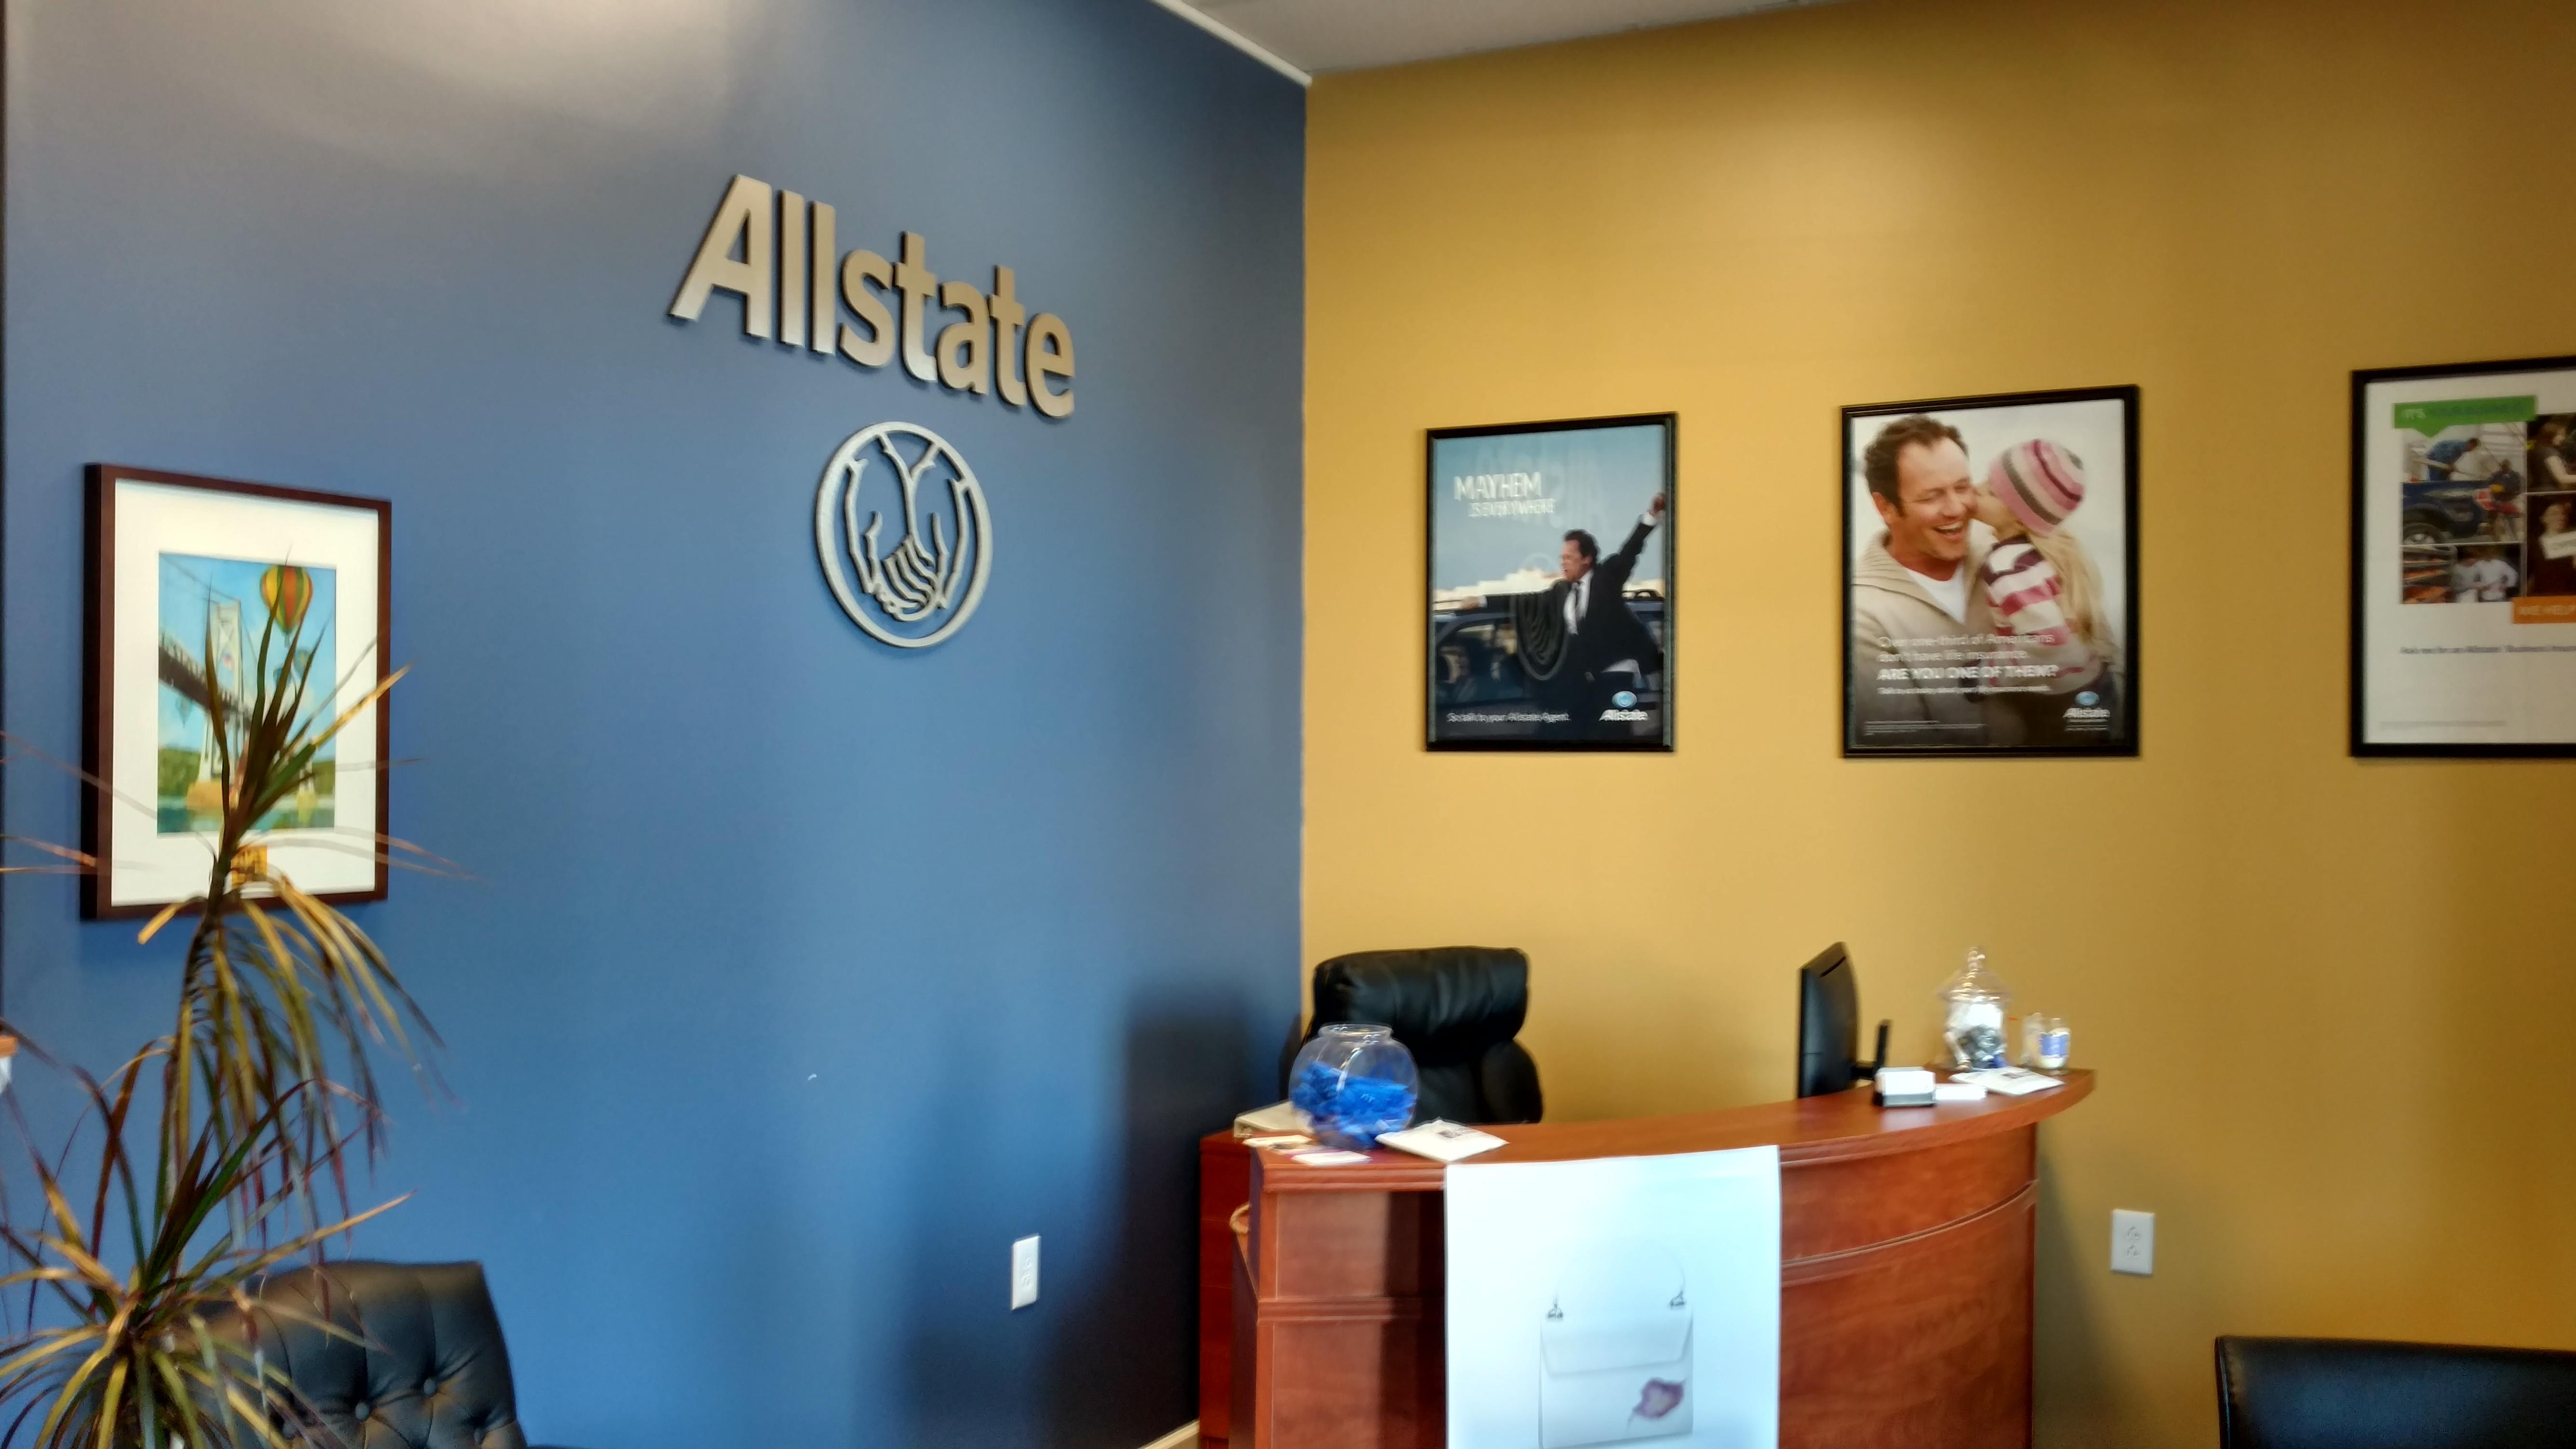 Allstate Insurance Agent: Janet Prince image 6